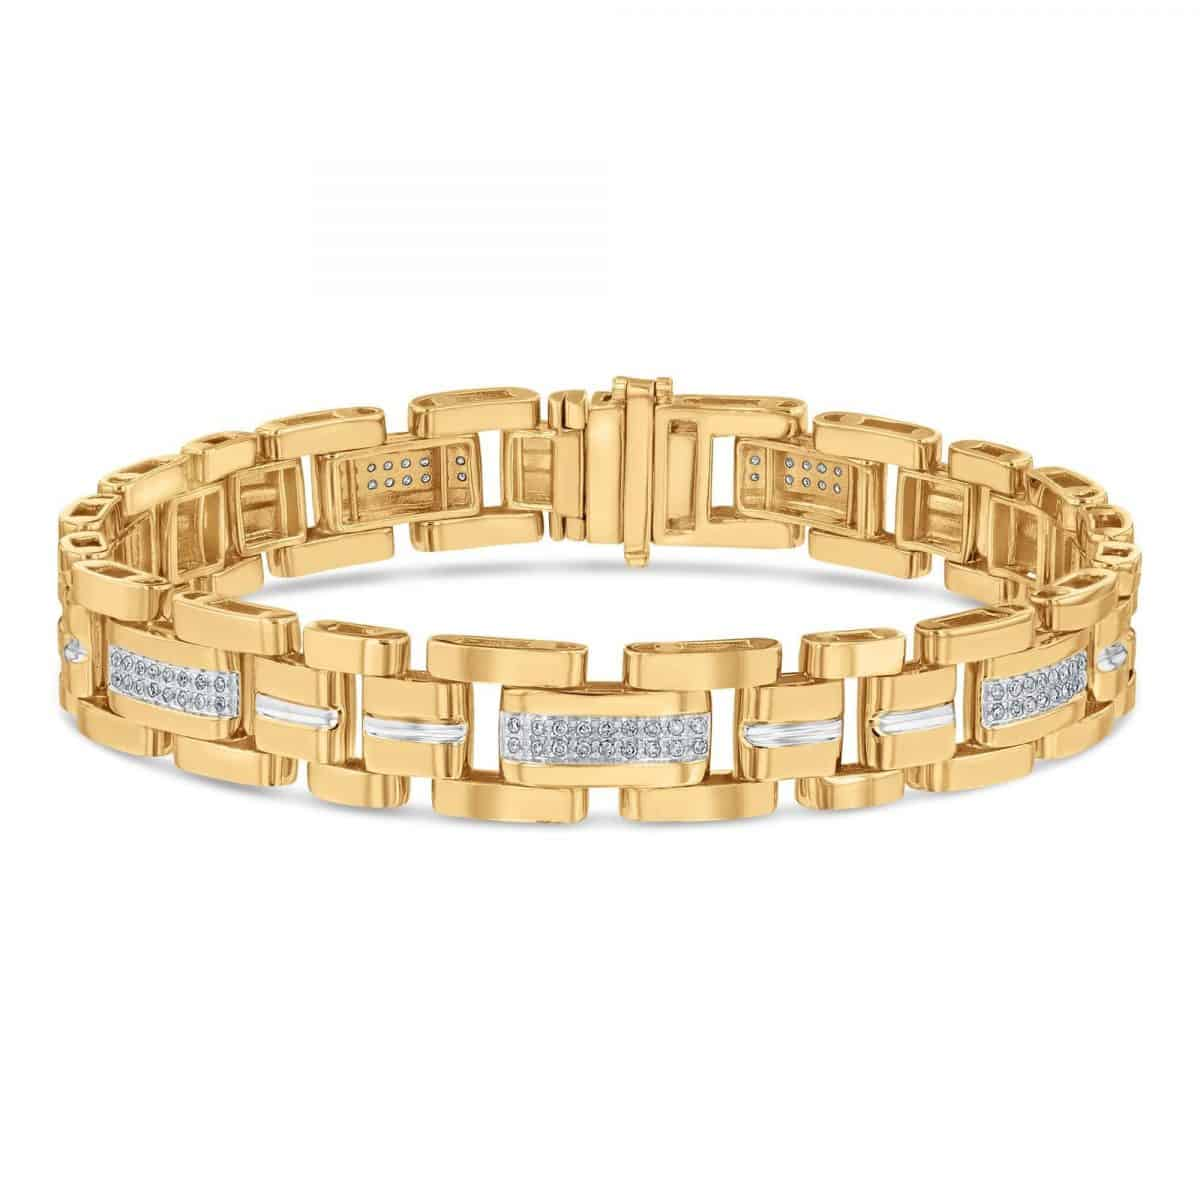 This Yellow Gold Diamond Link bracelet makes perfect his and his bracelets to give as a ring alternative